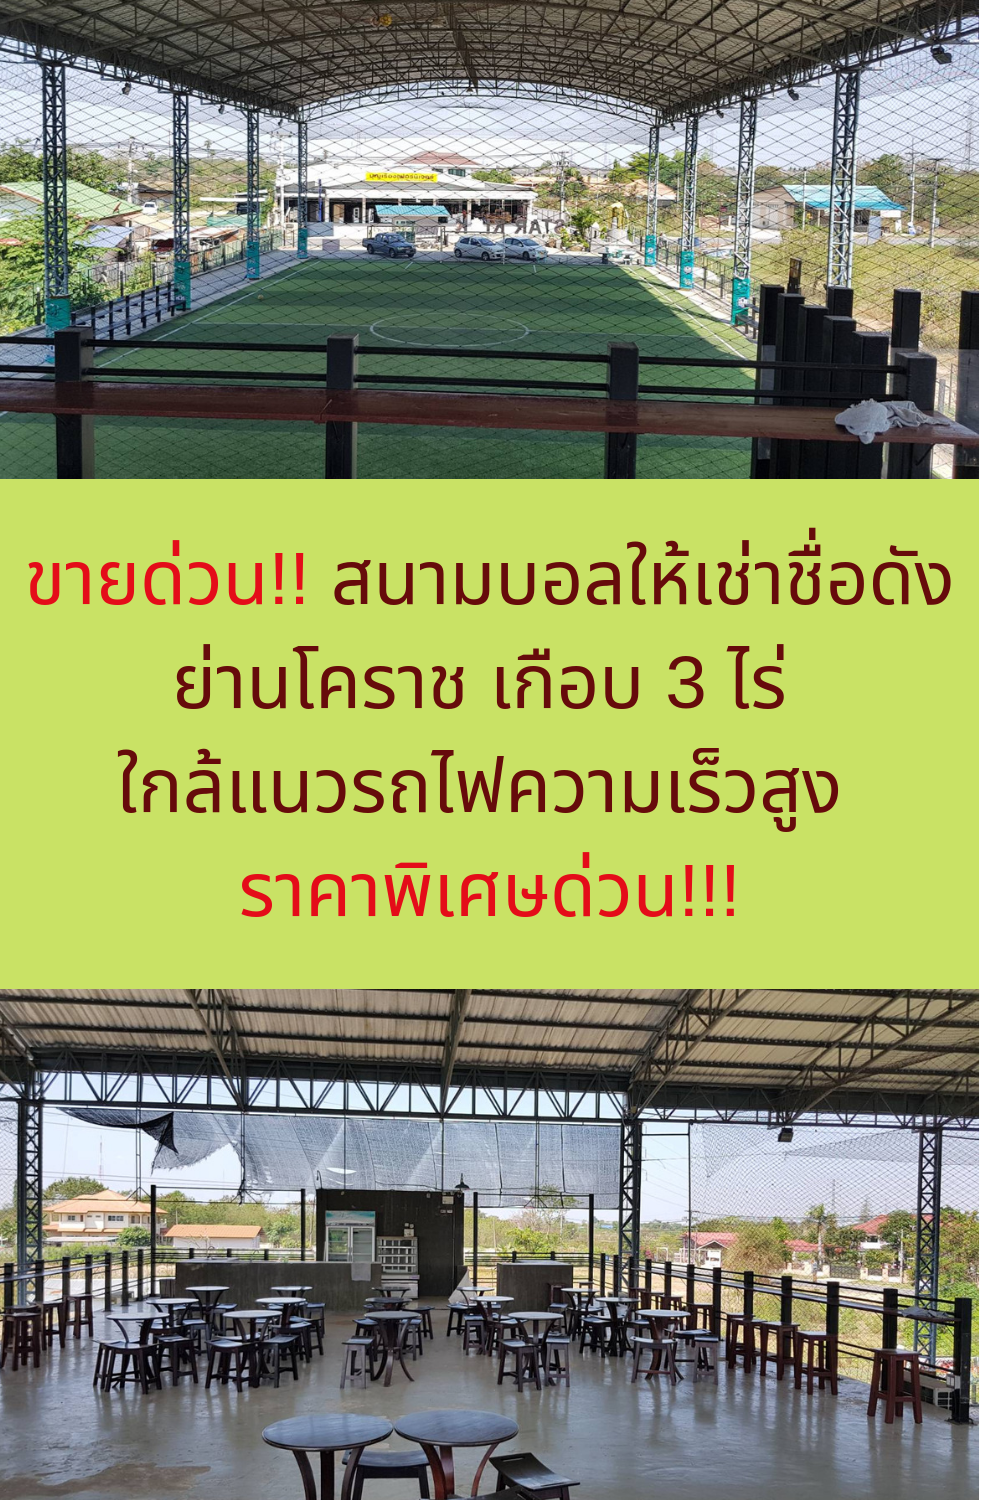 Urgent sale Famous football stadium for rent in Korat, 3 rai, near to the high speed train. Special price. Very urgent